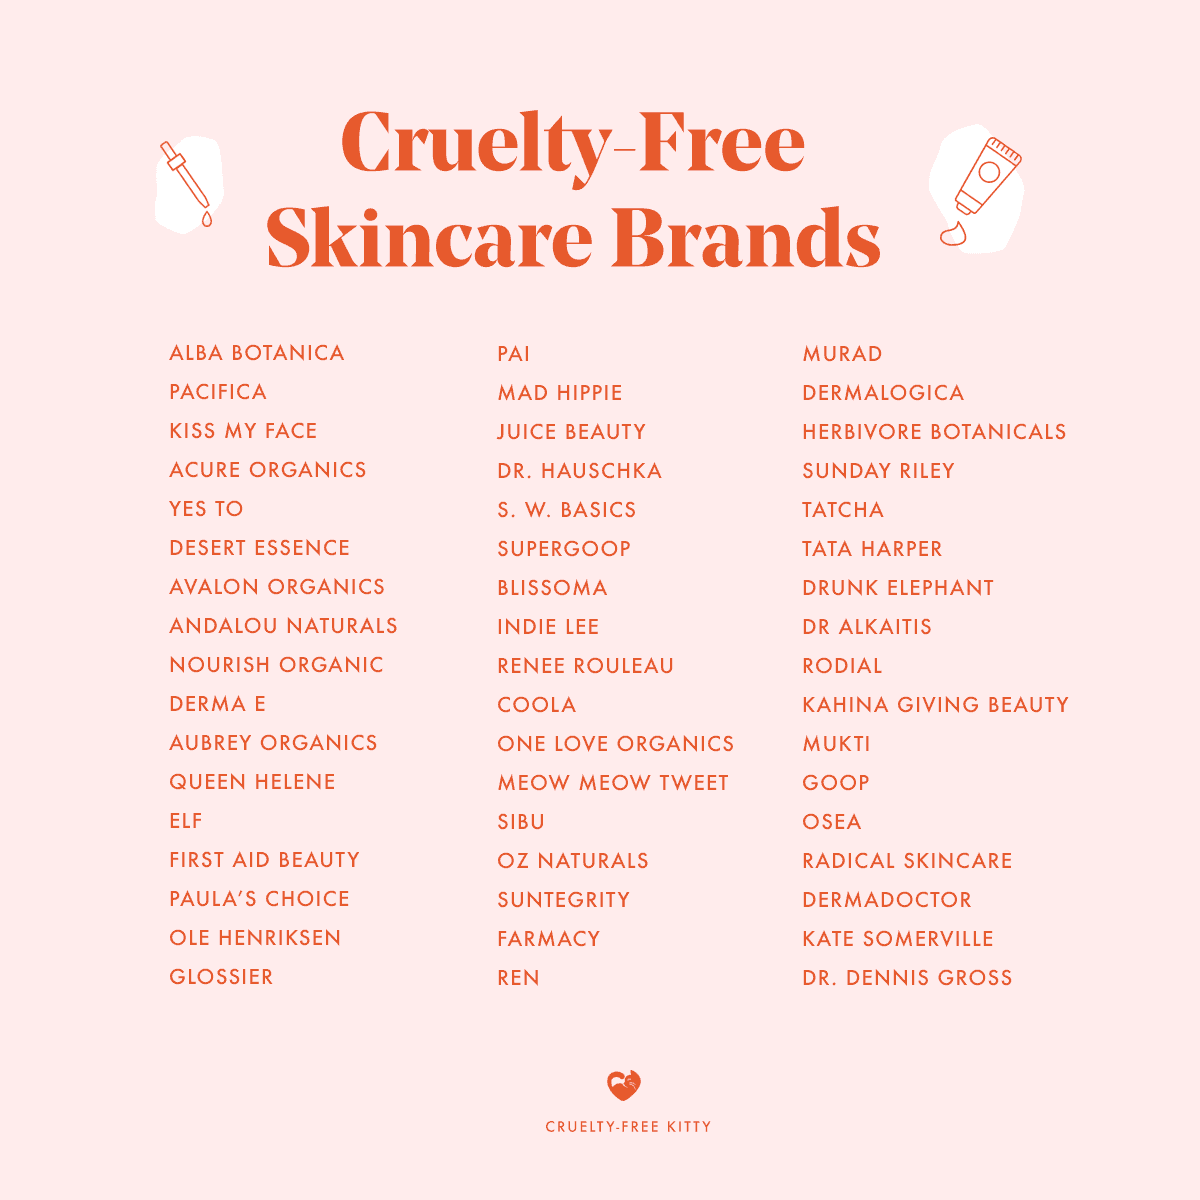 20 Cruelty Free Skincare Brands For Every Budget   Cruelty Free Kitty